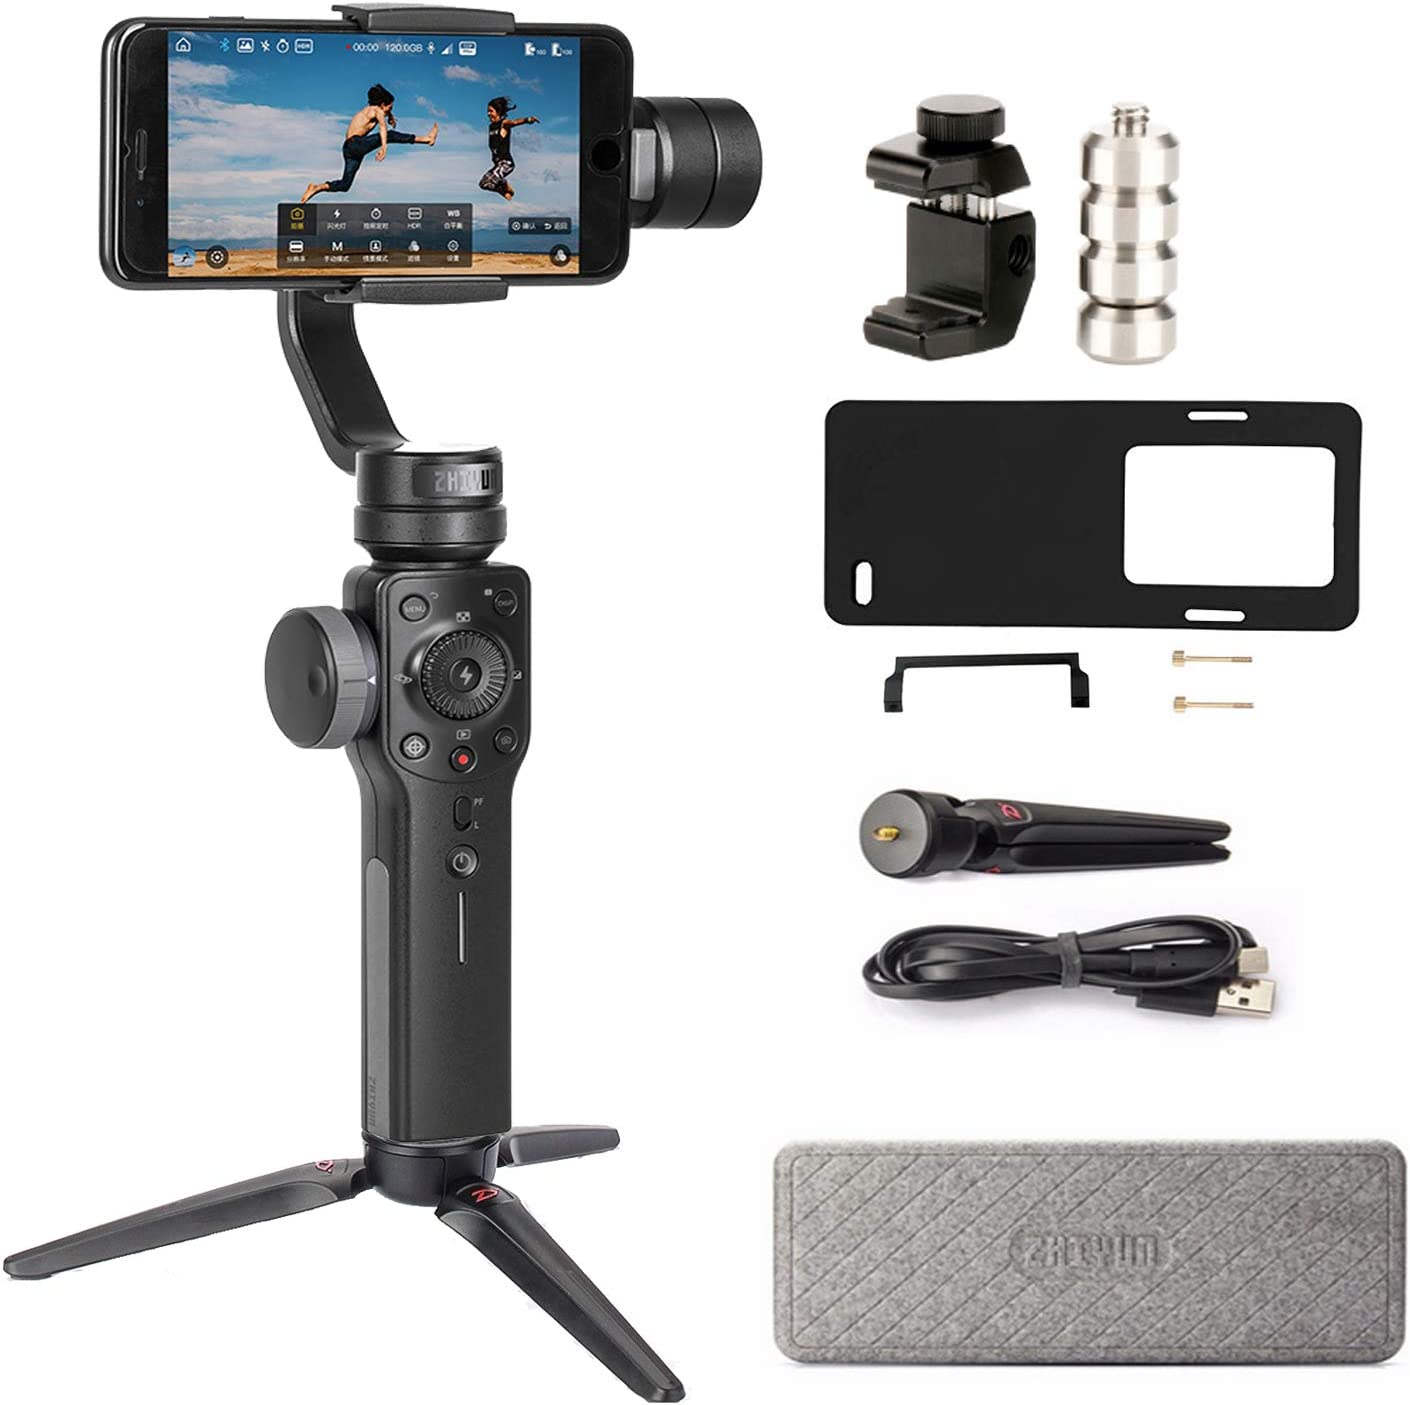 Amazon Com Zhiyun Smooth 4 3 Axis Smartphone Gimbal Stabilizer For Iphone 11 Pro Xs Max Xr X 8 Plus 7 6 Se Android Phone Filming Vlog Youtuber Live Video Record Plate Adapter For Gopro Counterweight